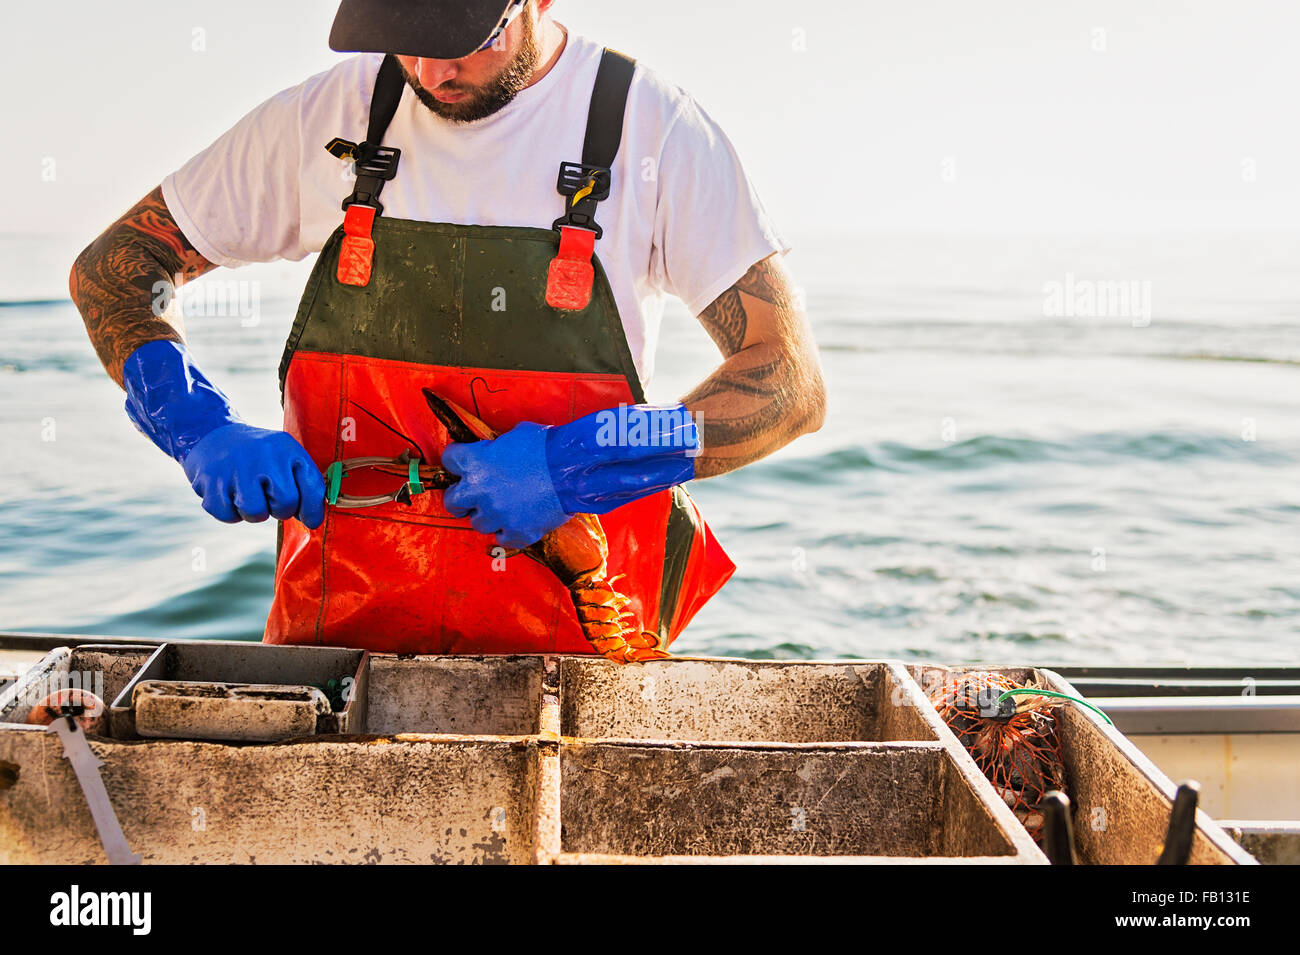 Fisherman putting rubber band on lobster - Stock Image